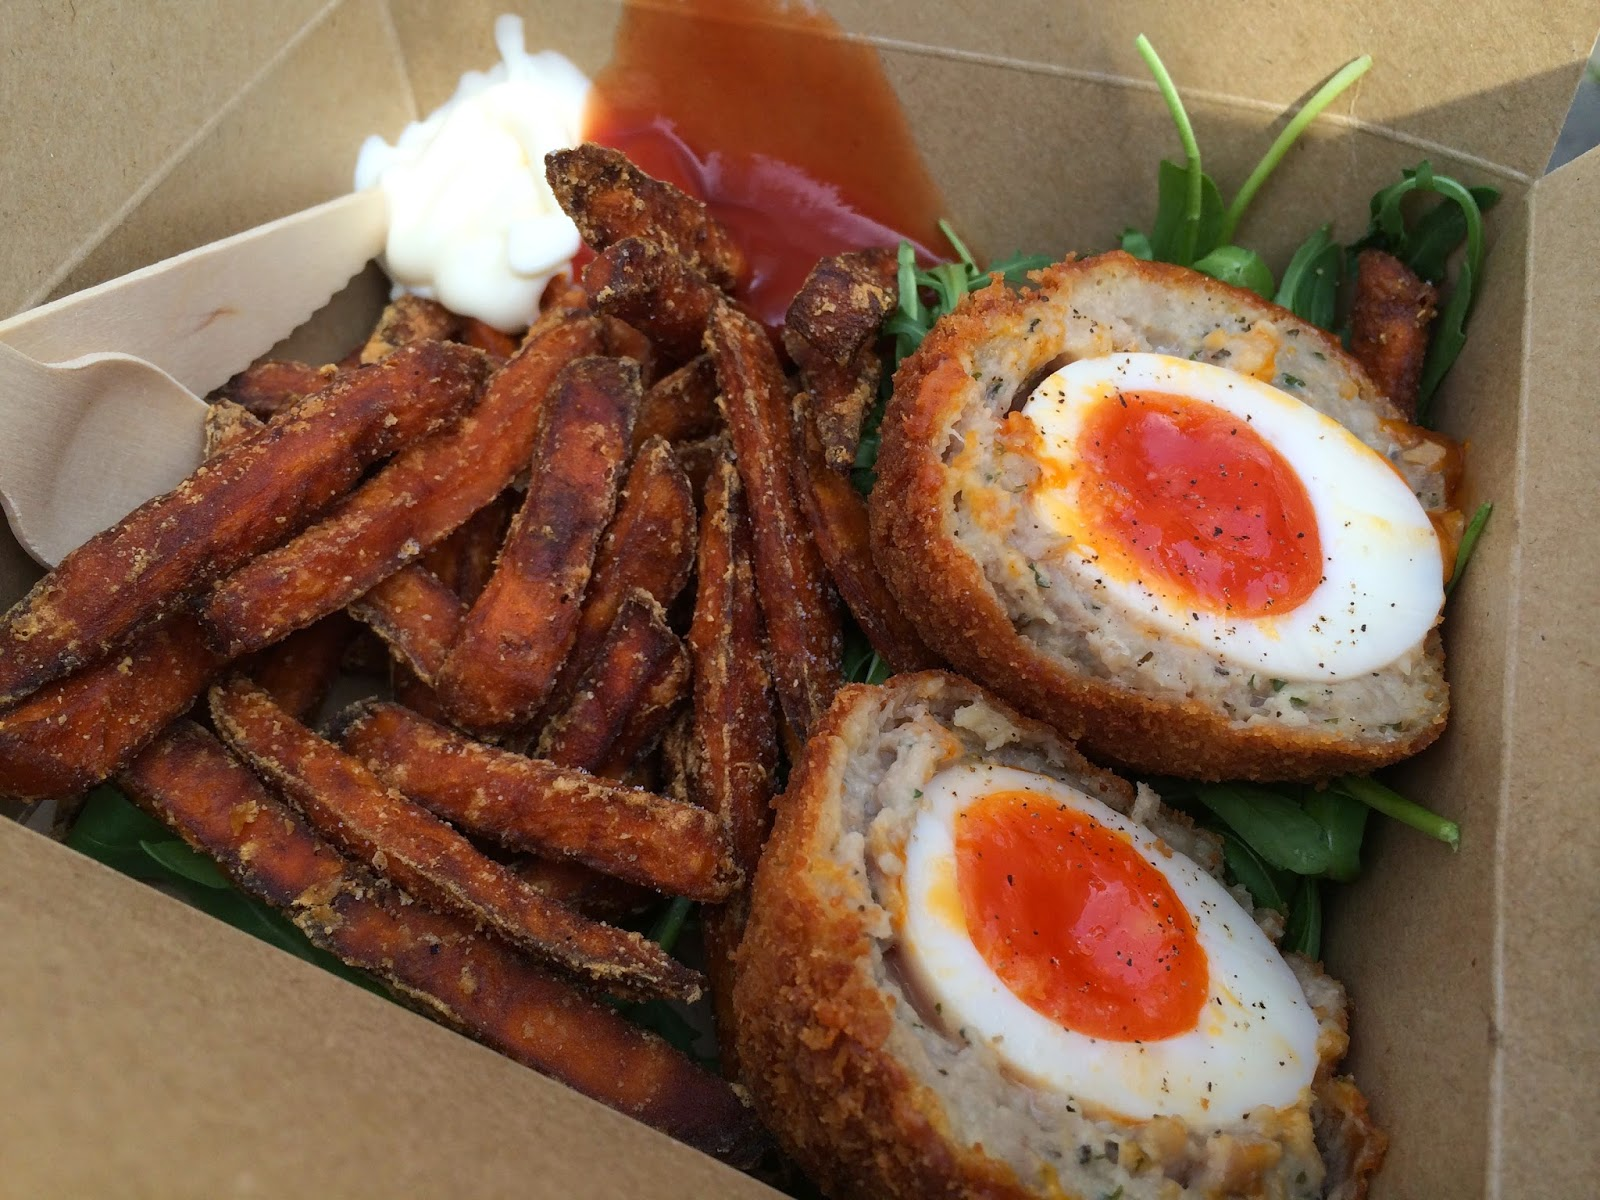 Scotch eggs by scotchtails borough market lucy loves to eat what does it take to make a good scotch egg a soft boiled egg with a runny centre juicy and flavourful sausage meat and a crispy breadcrumb coating forumfinder Choice Image